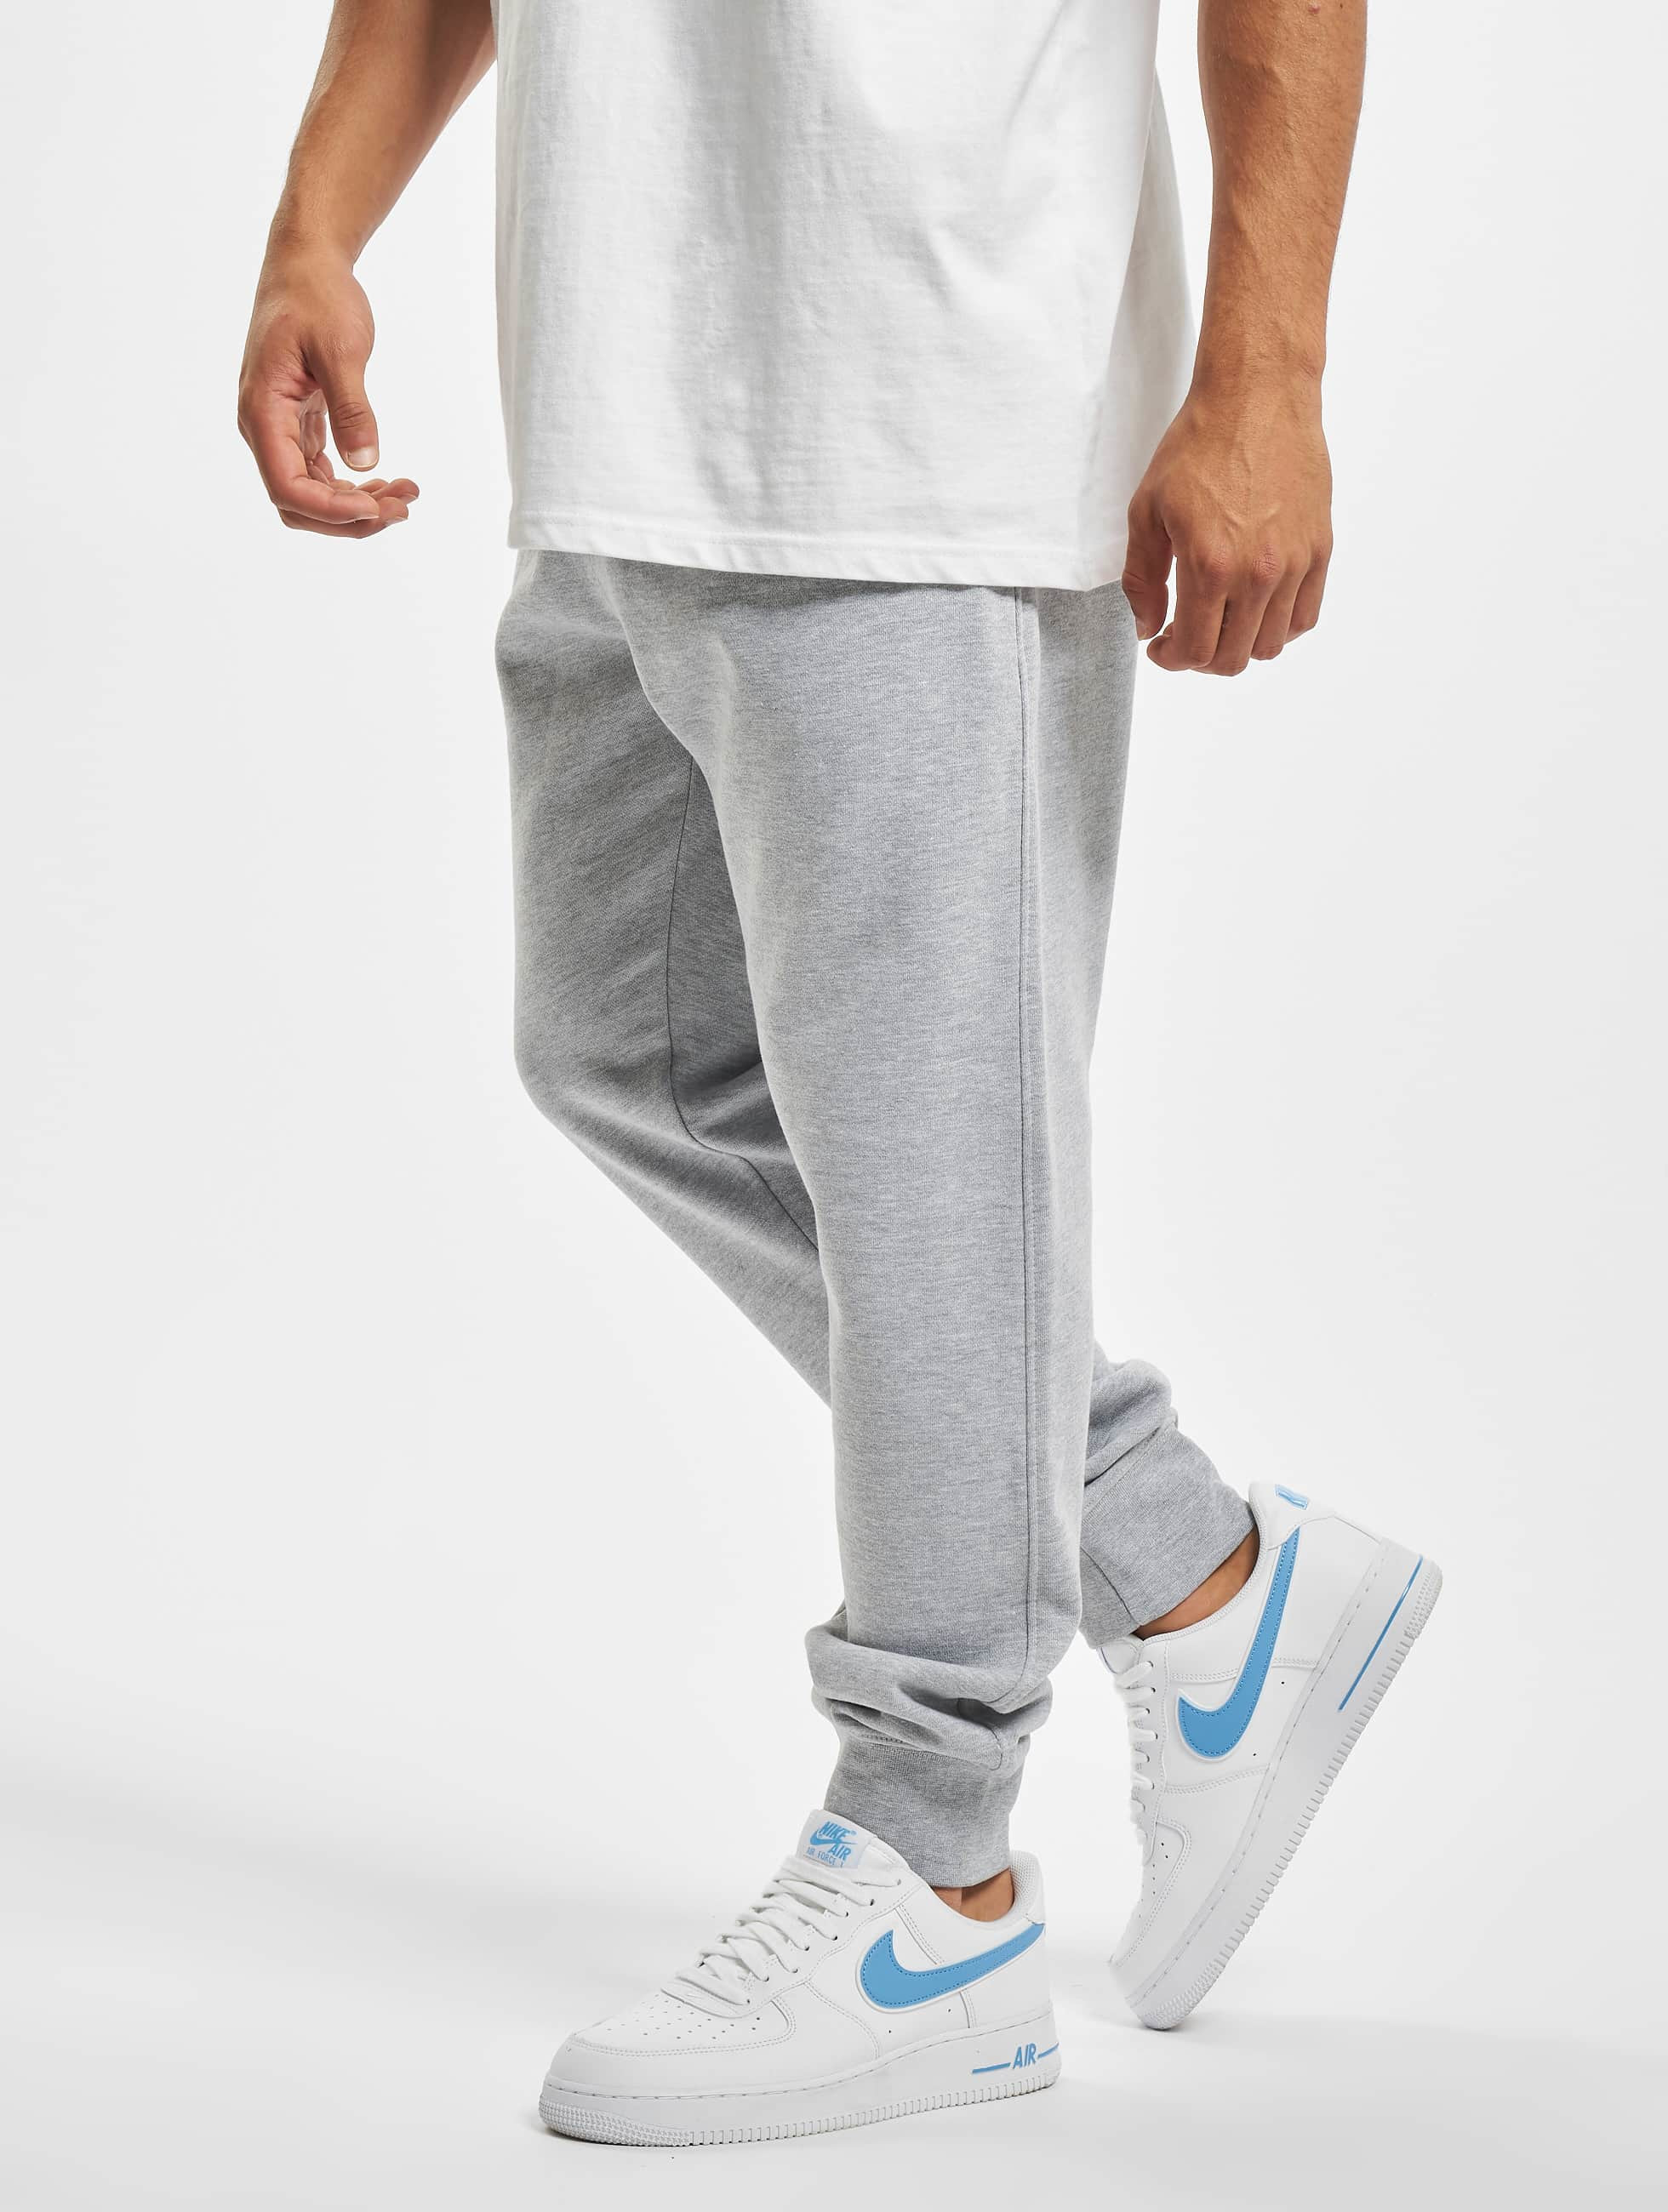 DEF / Sweat Pant Dimi in grey 2XL